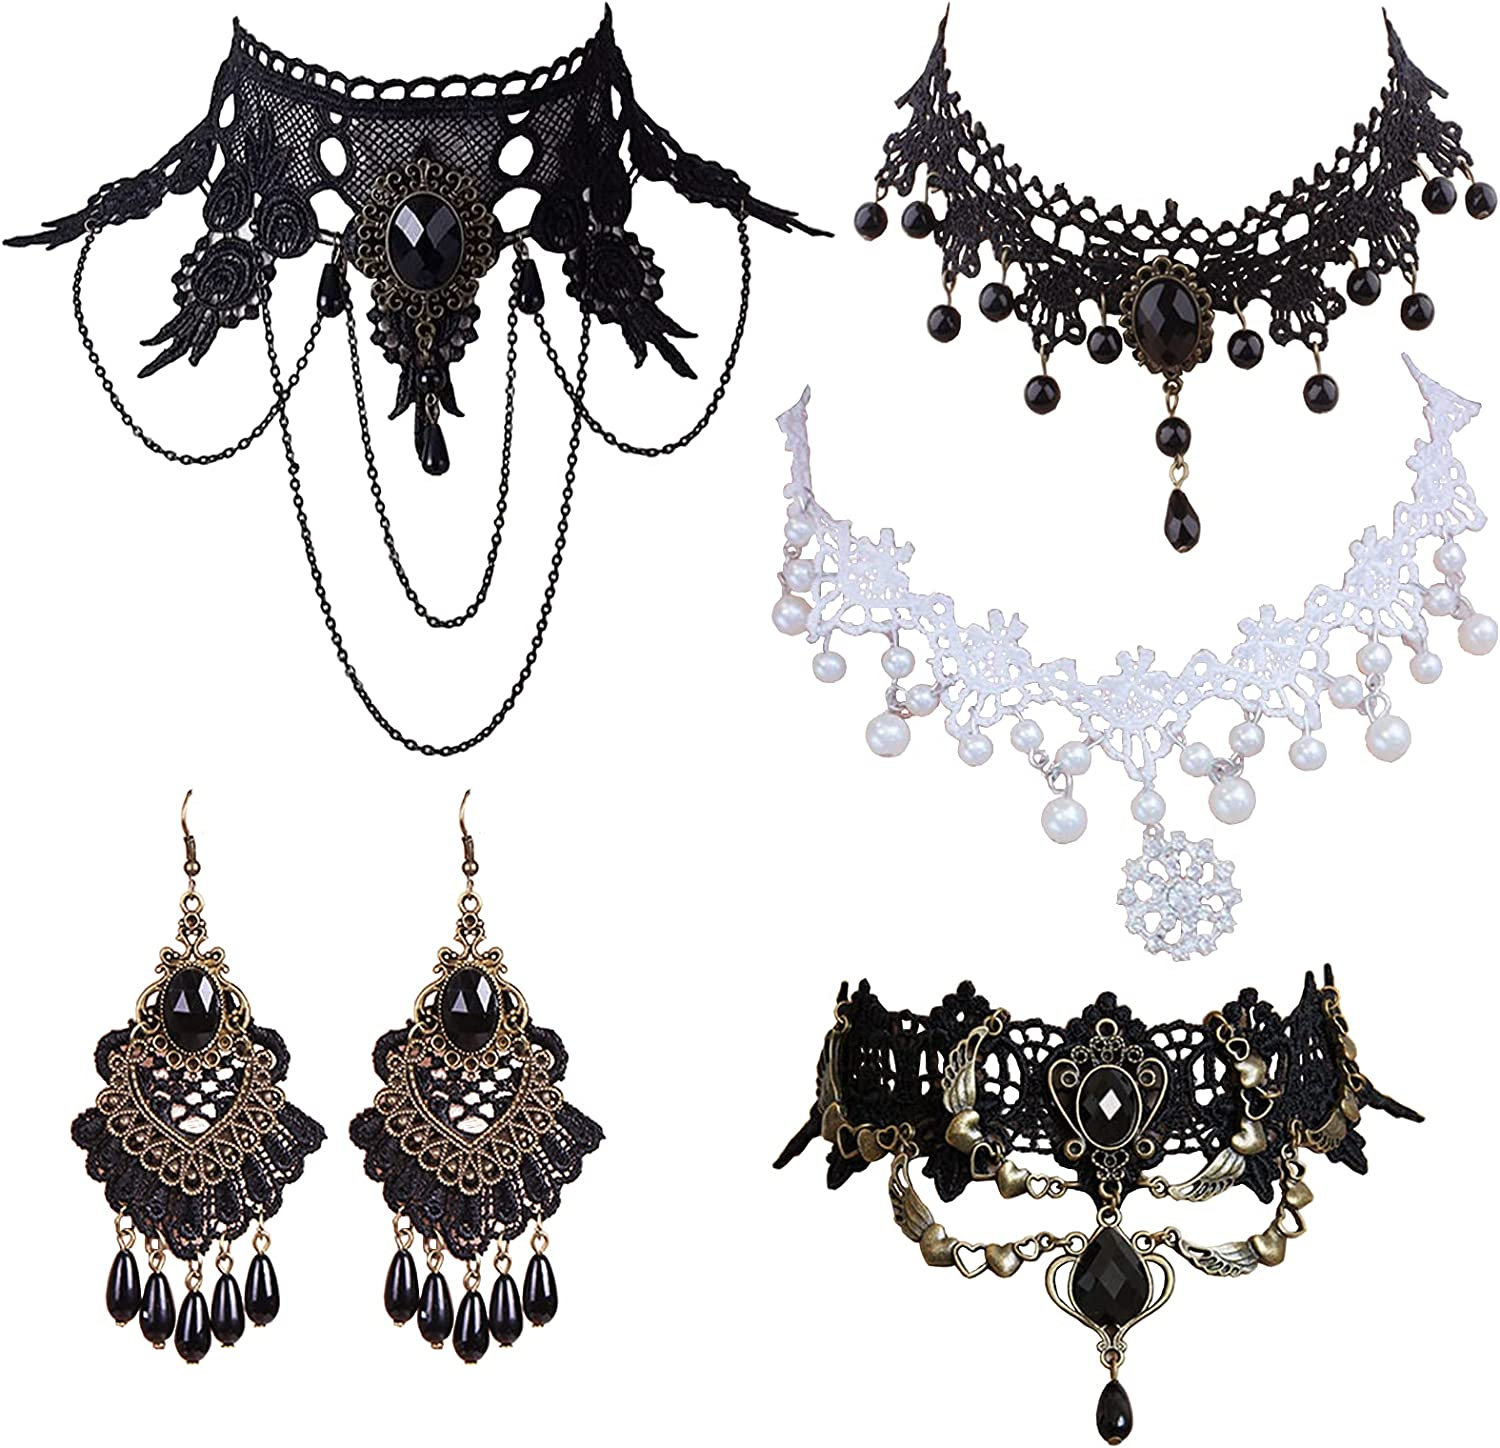 Faccubee 5 Pieces SEAL limited product Set Halloween Sexy Ele Popular brand in the world Women Girl Lady Jewelry